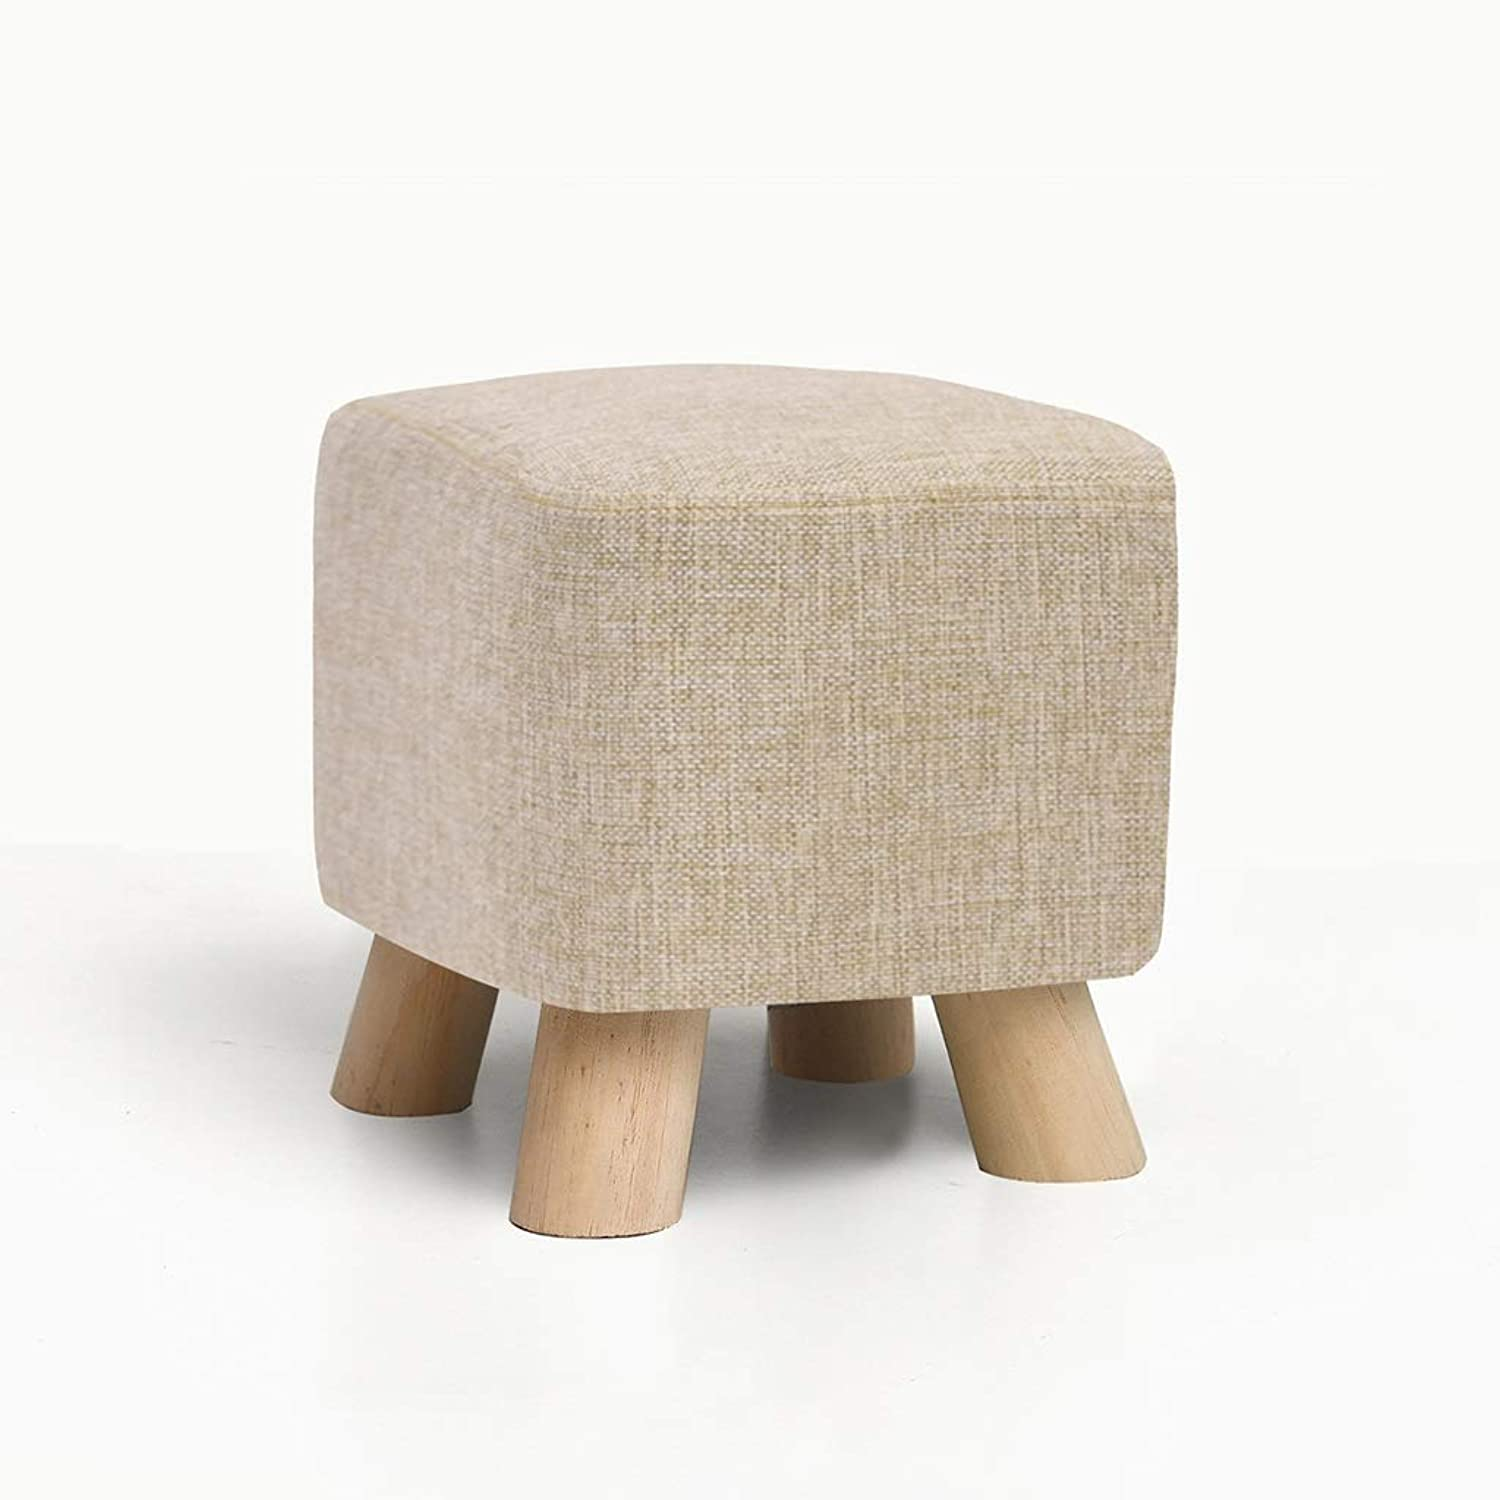 CXQ Modern Fashion Pine Stool Creative Square Fabric Stool Sofa Stool Home Low Stool shoes Bench (color   Green)